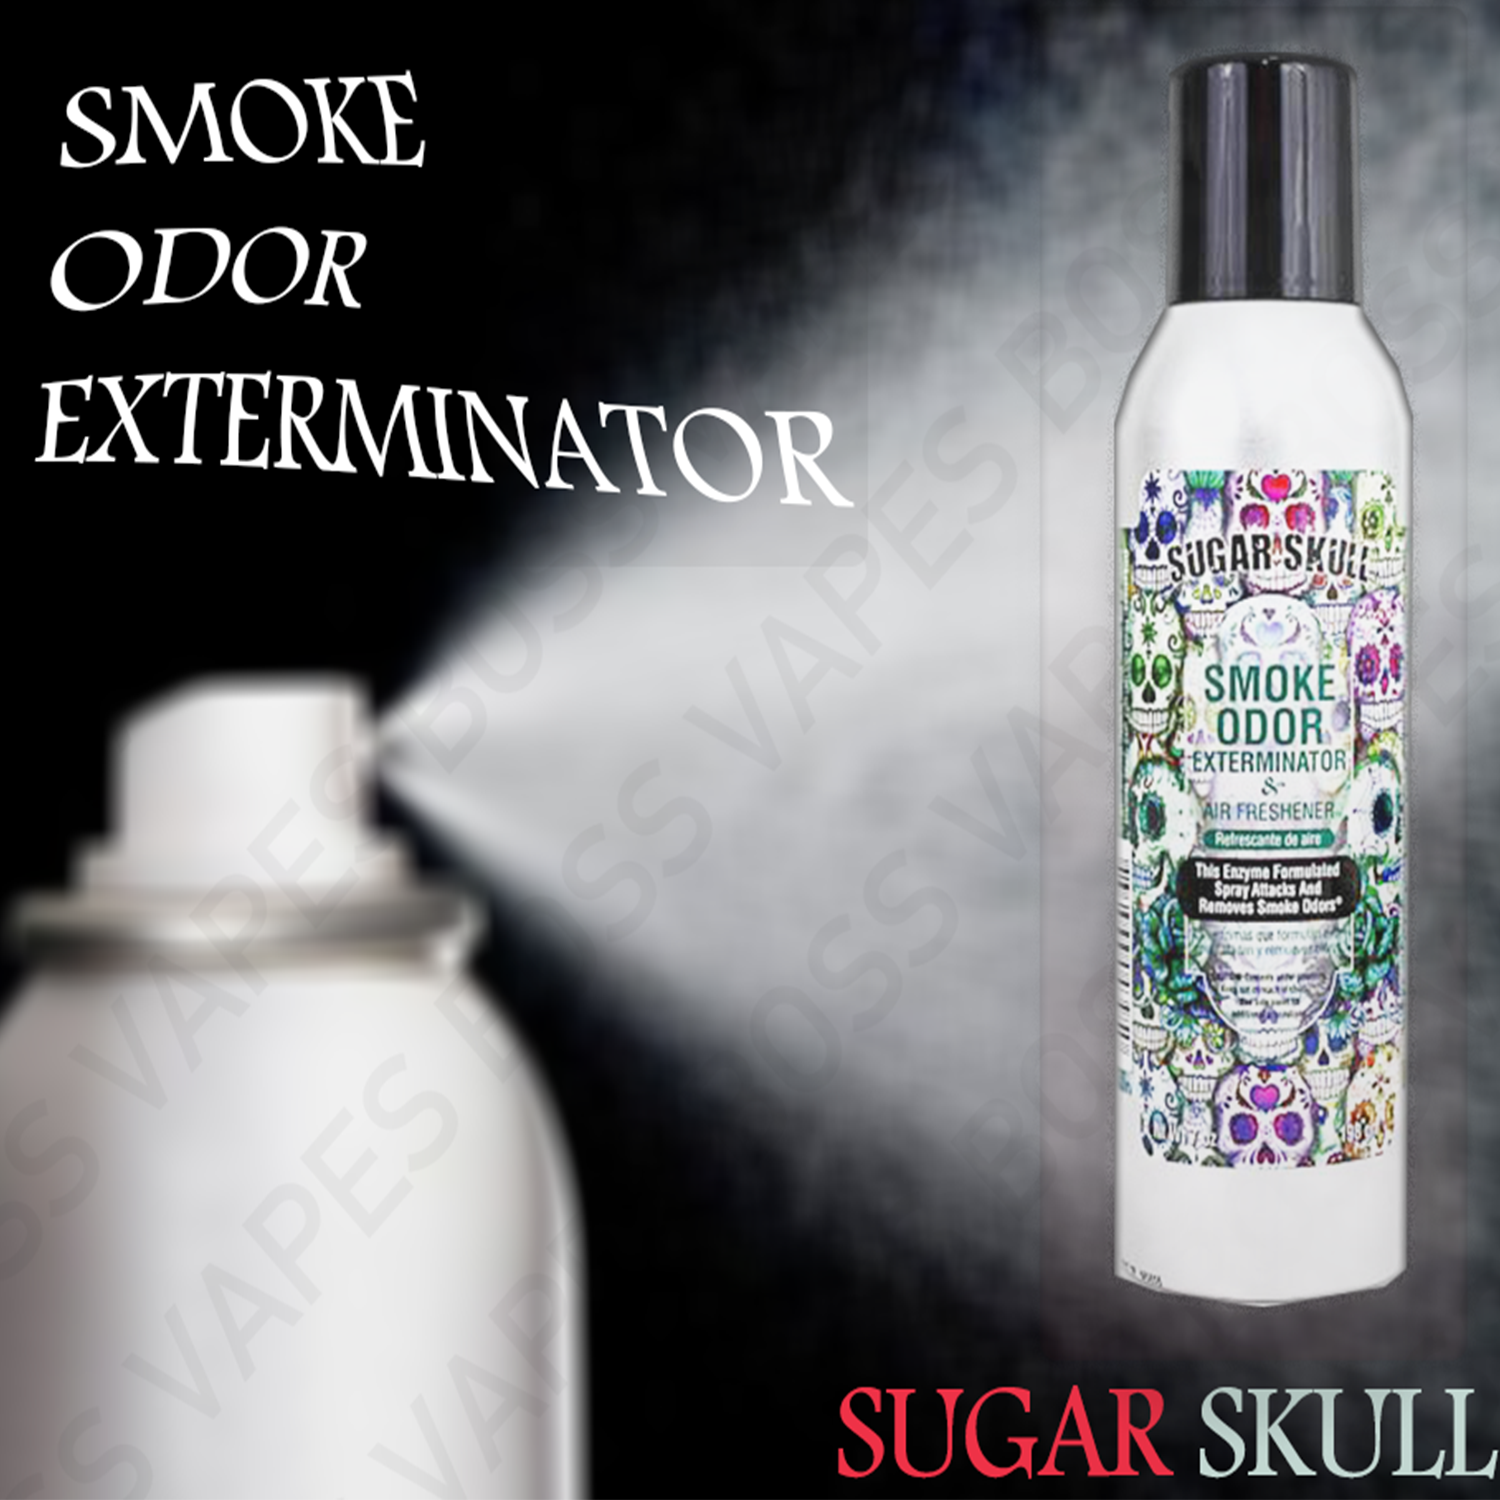 Smoke Odor Exterminator Spray - 7oz - Boss Vapes